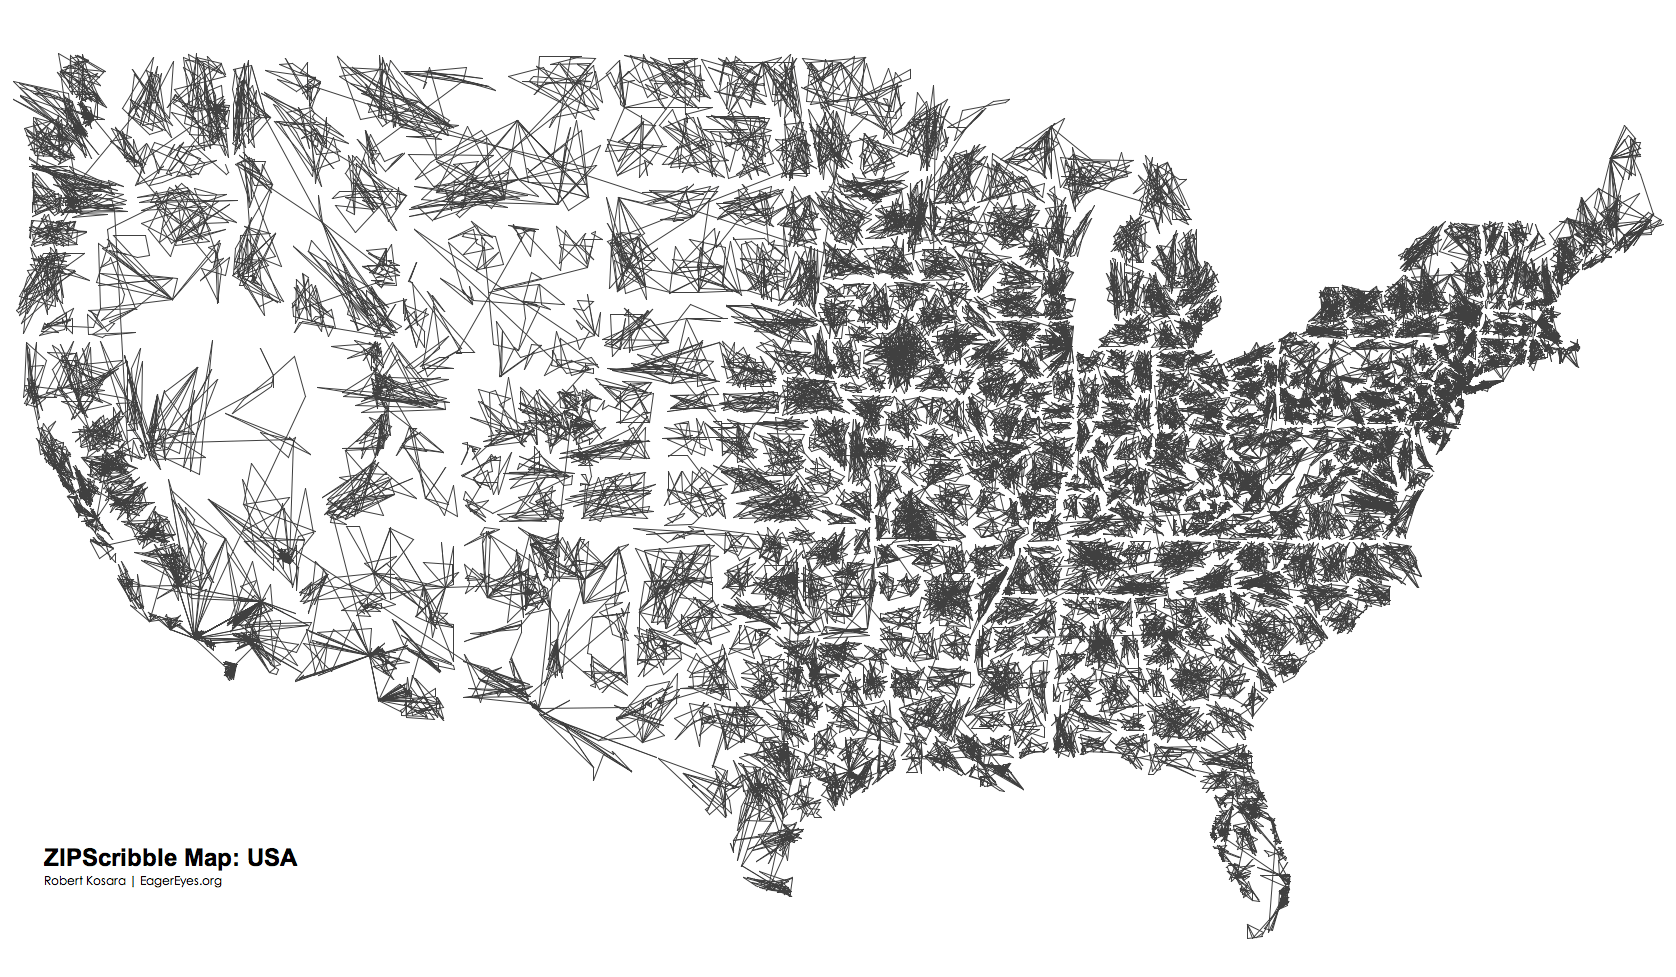 Scribble Map Of The Contiguous Us Drawn By Zipcode